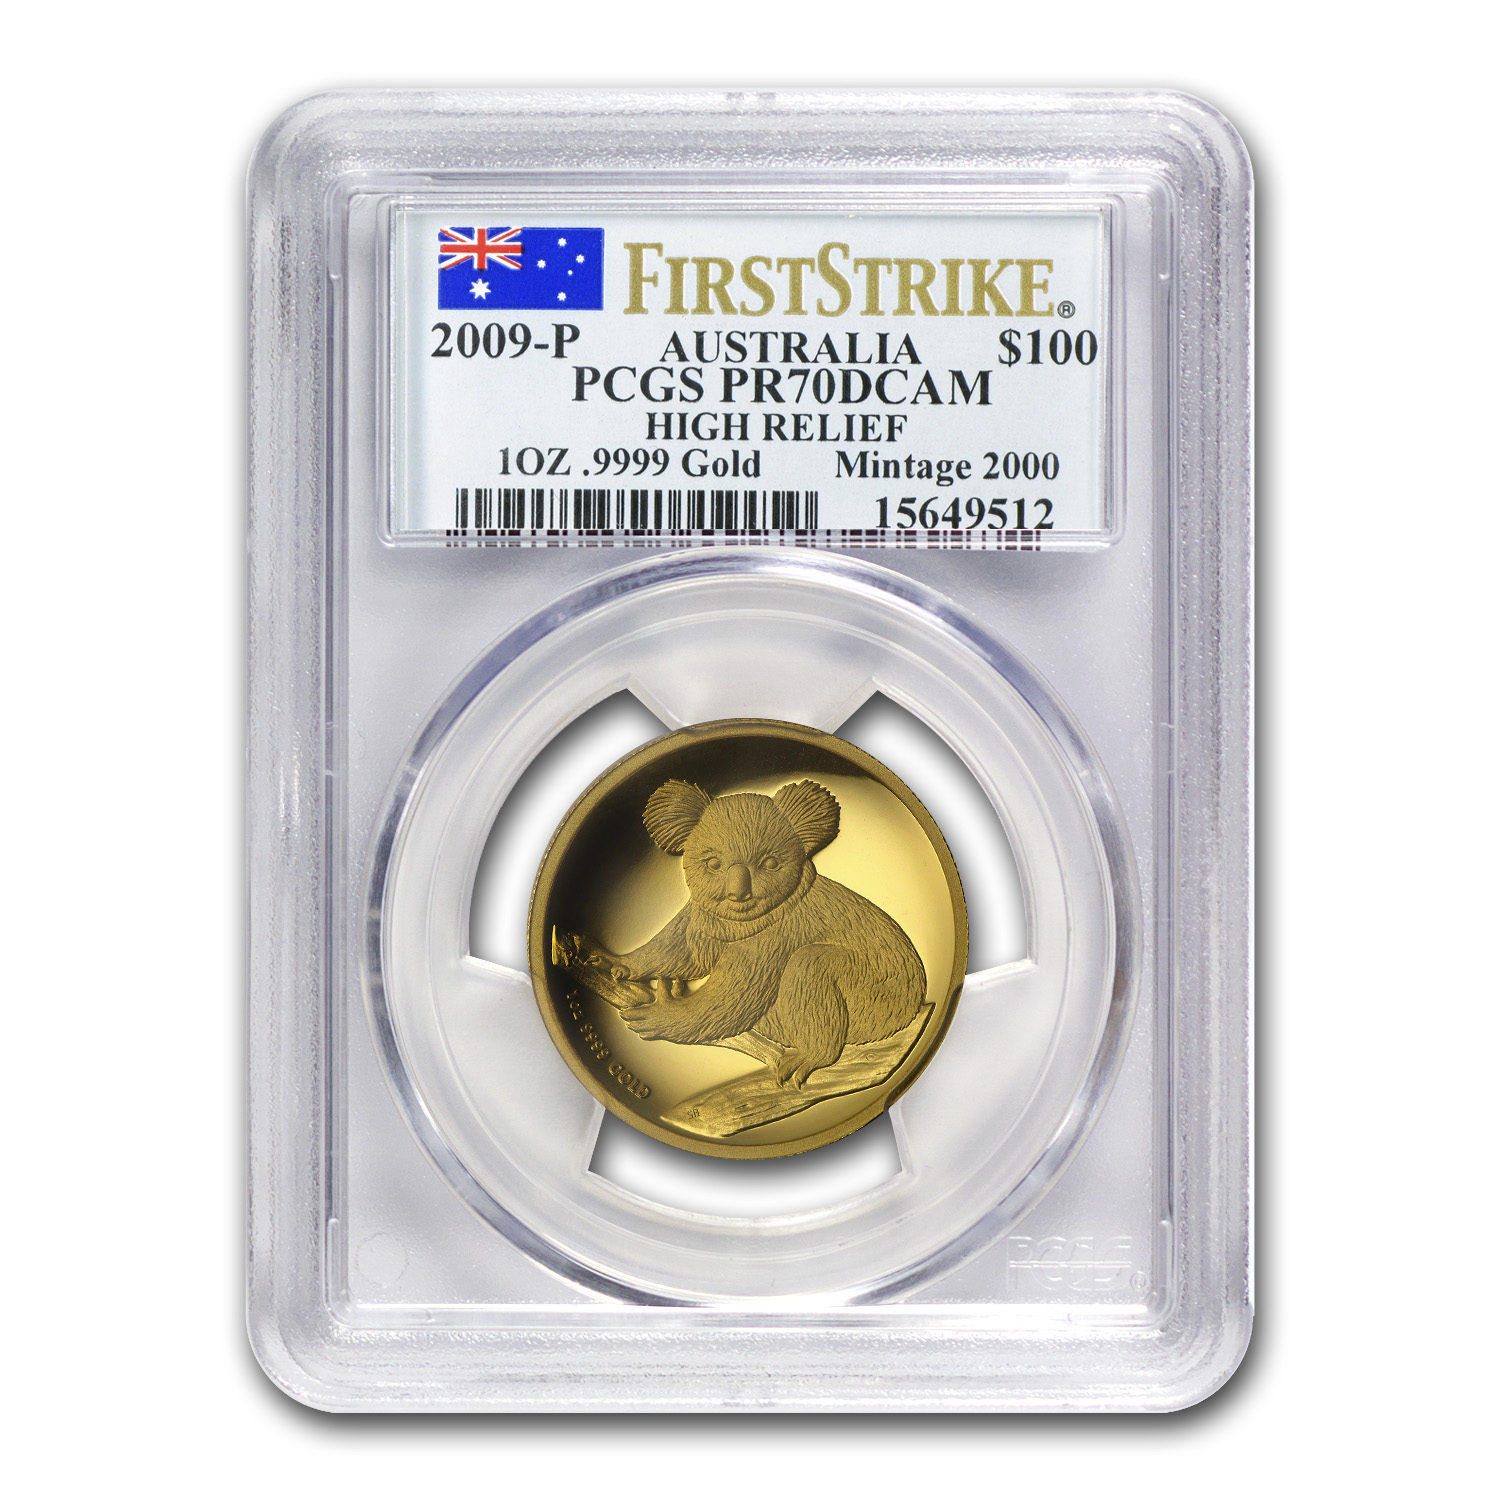 2009-P Australia 1 oz Gold Koala PR-70 PCGS (FS, High Relief)